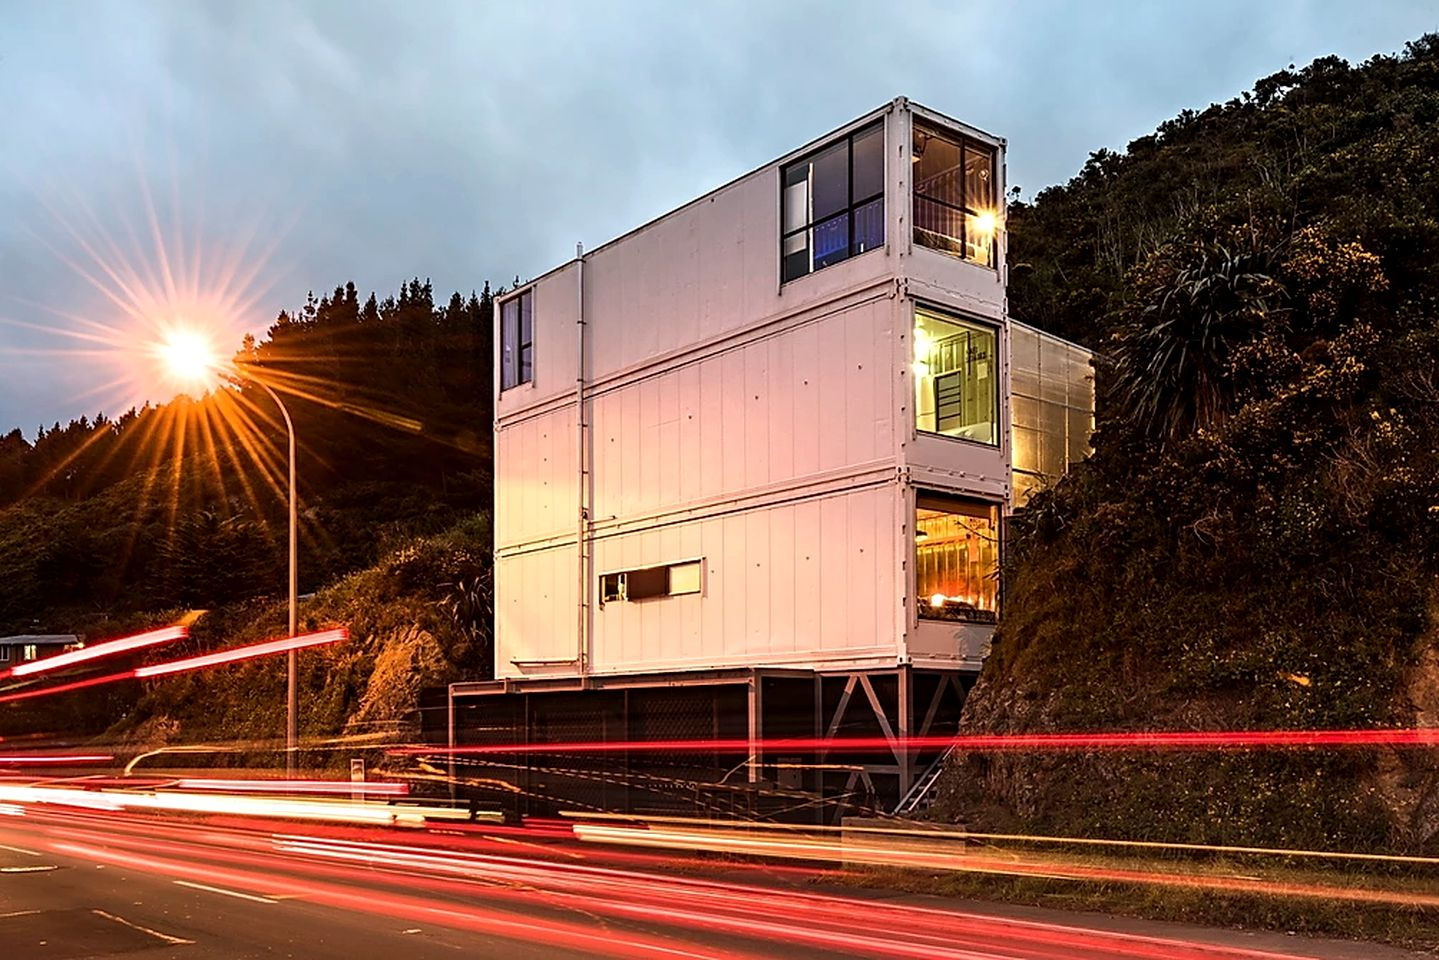 Containers (Wellington, North Island, New Zealand)